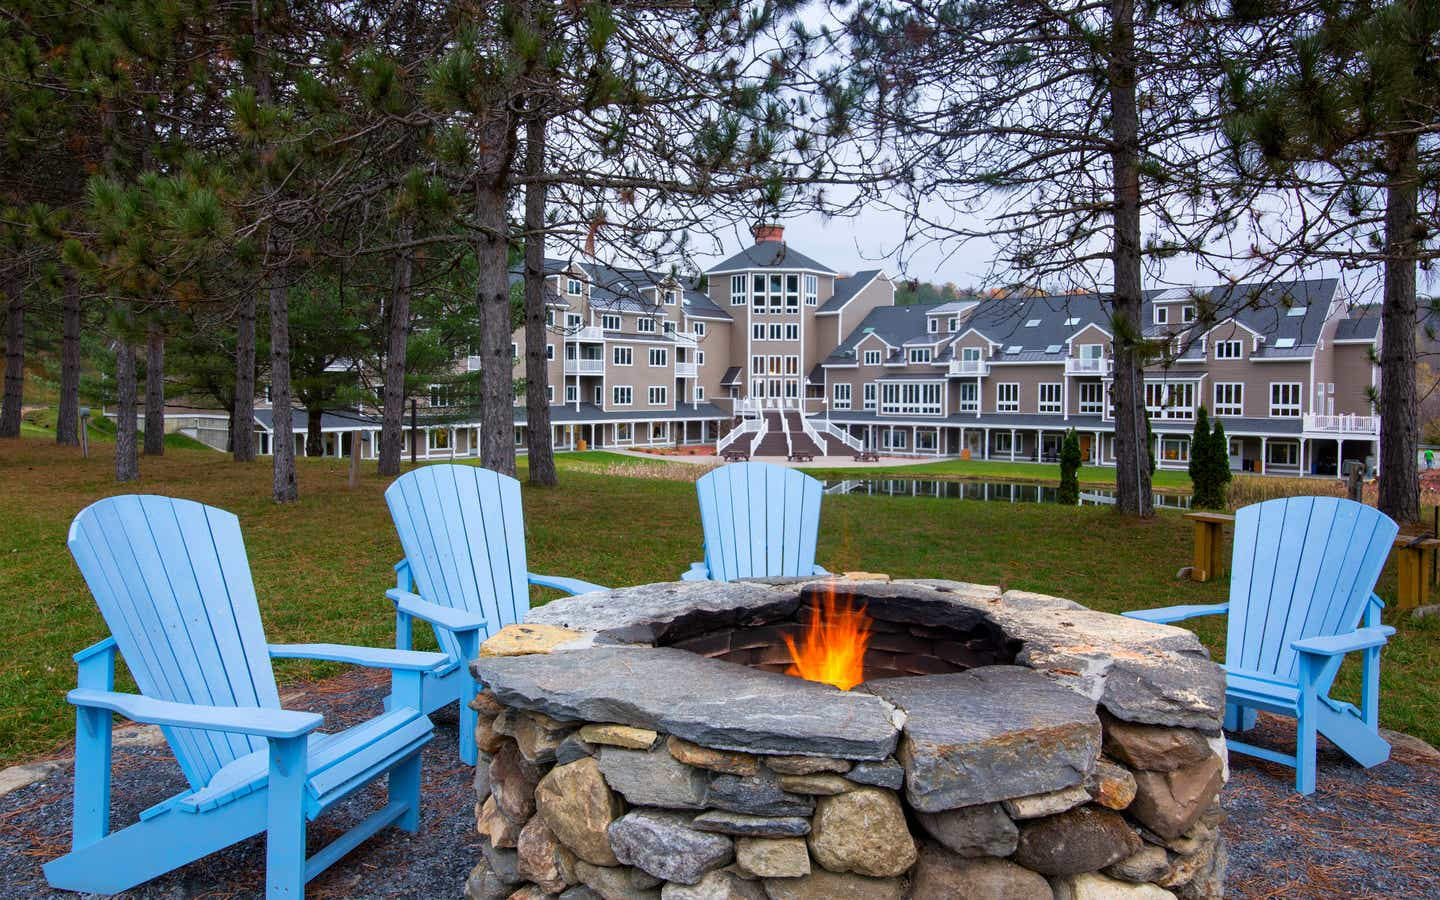 Outdoor fire pit with four blue chairs around it at Mount Ascutney Resort in Brownsville, Vermont.